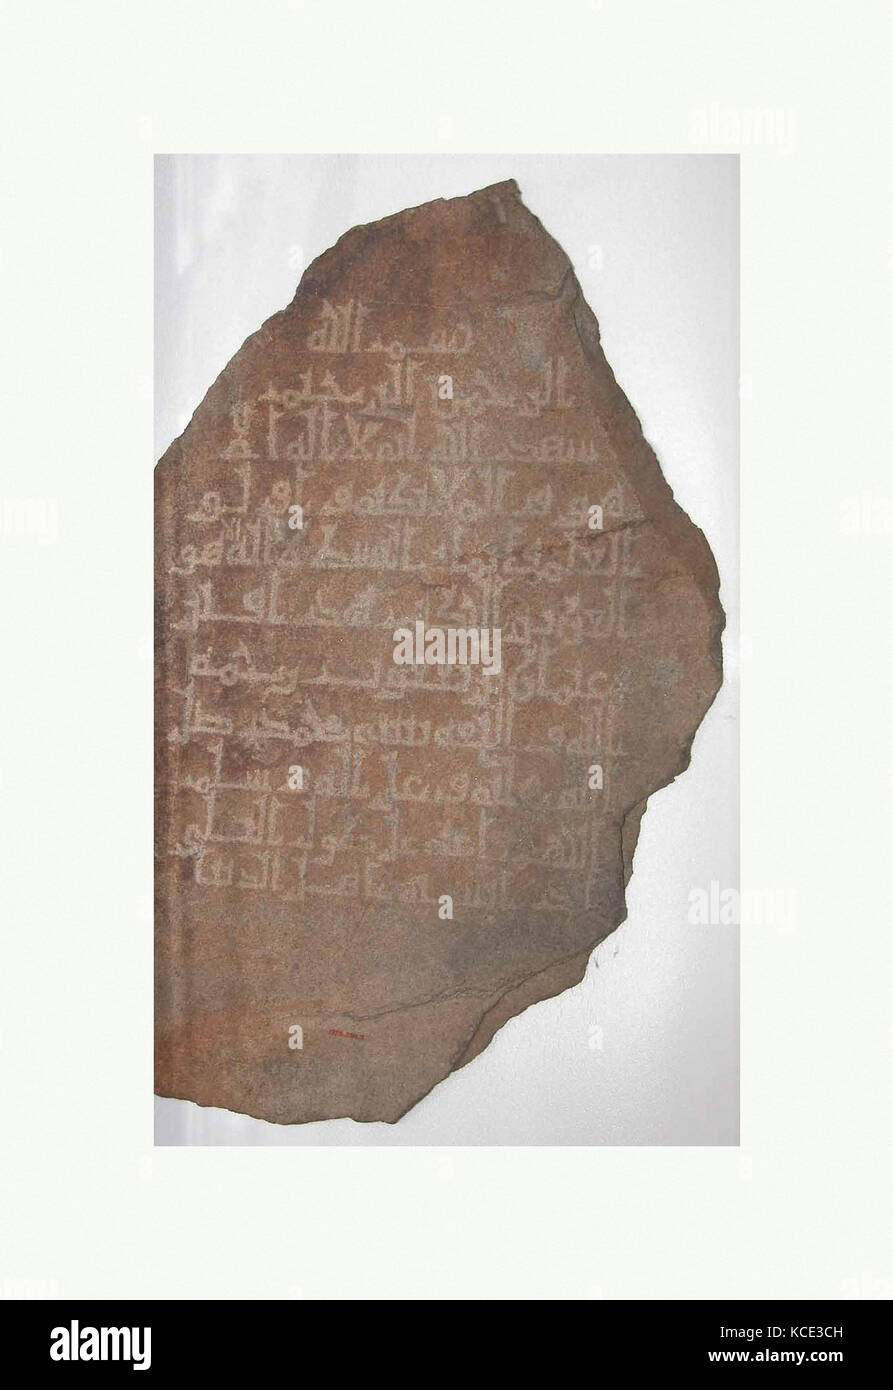 Tombstone, 10th–11th century, Attributed to Egypt, Granite, greyish; engraved on one side in Kufic script, H. 25 Stock Photo